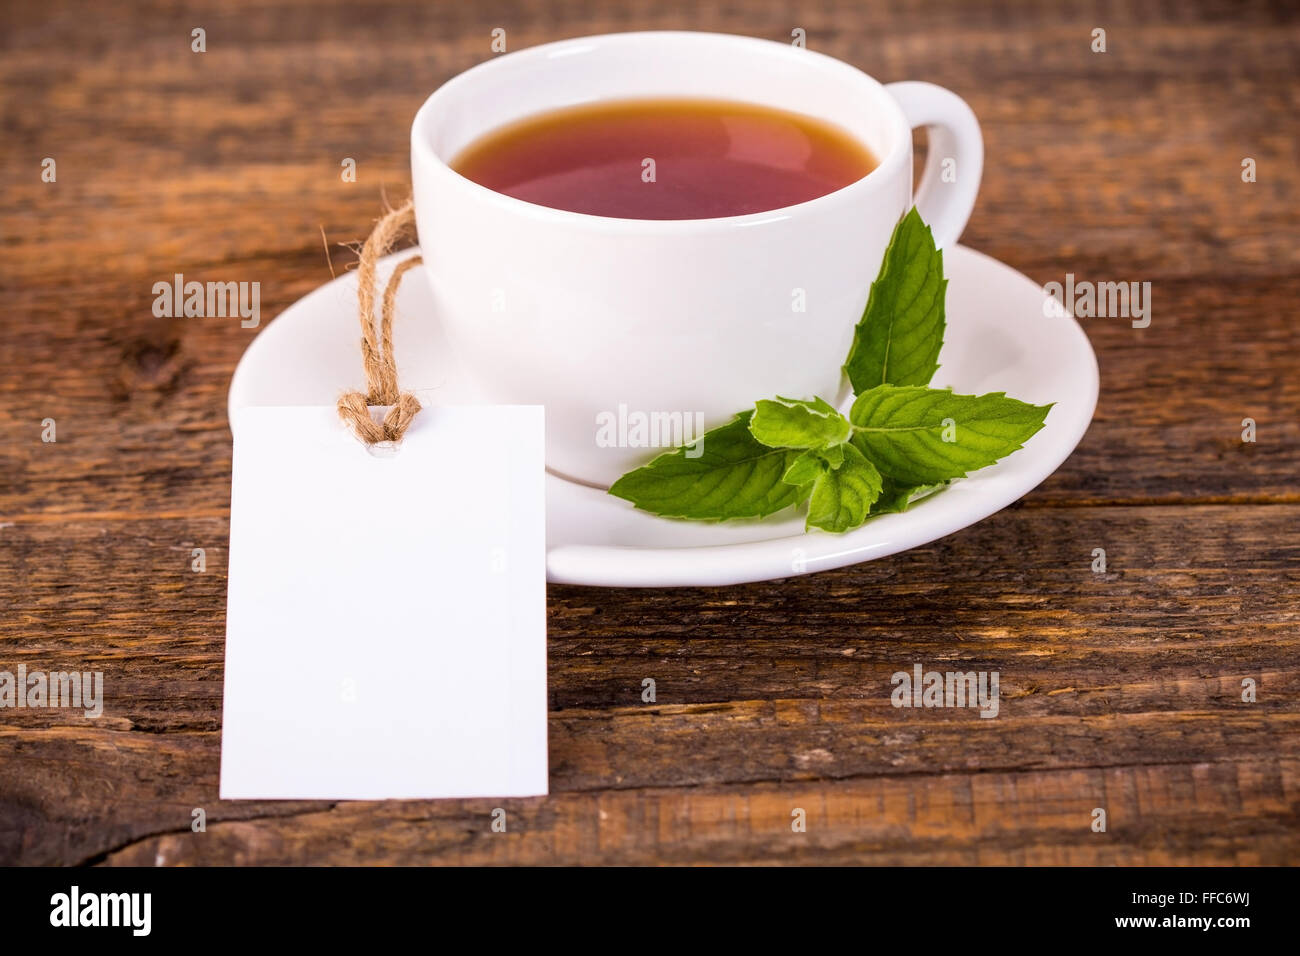 Cup of tea with green leaves and blank label - Stock Image